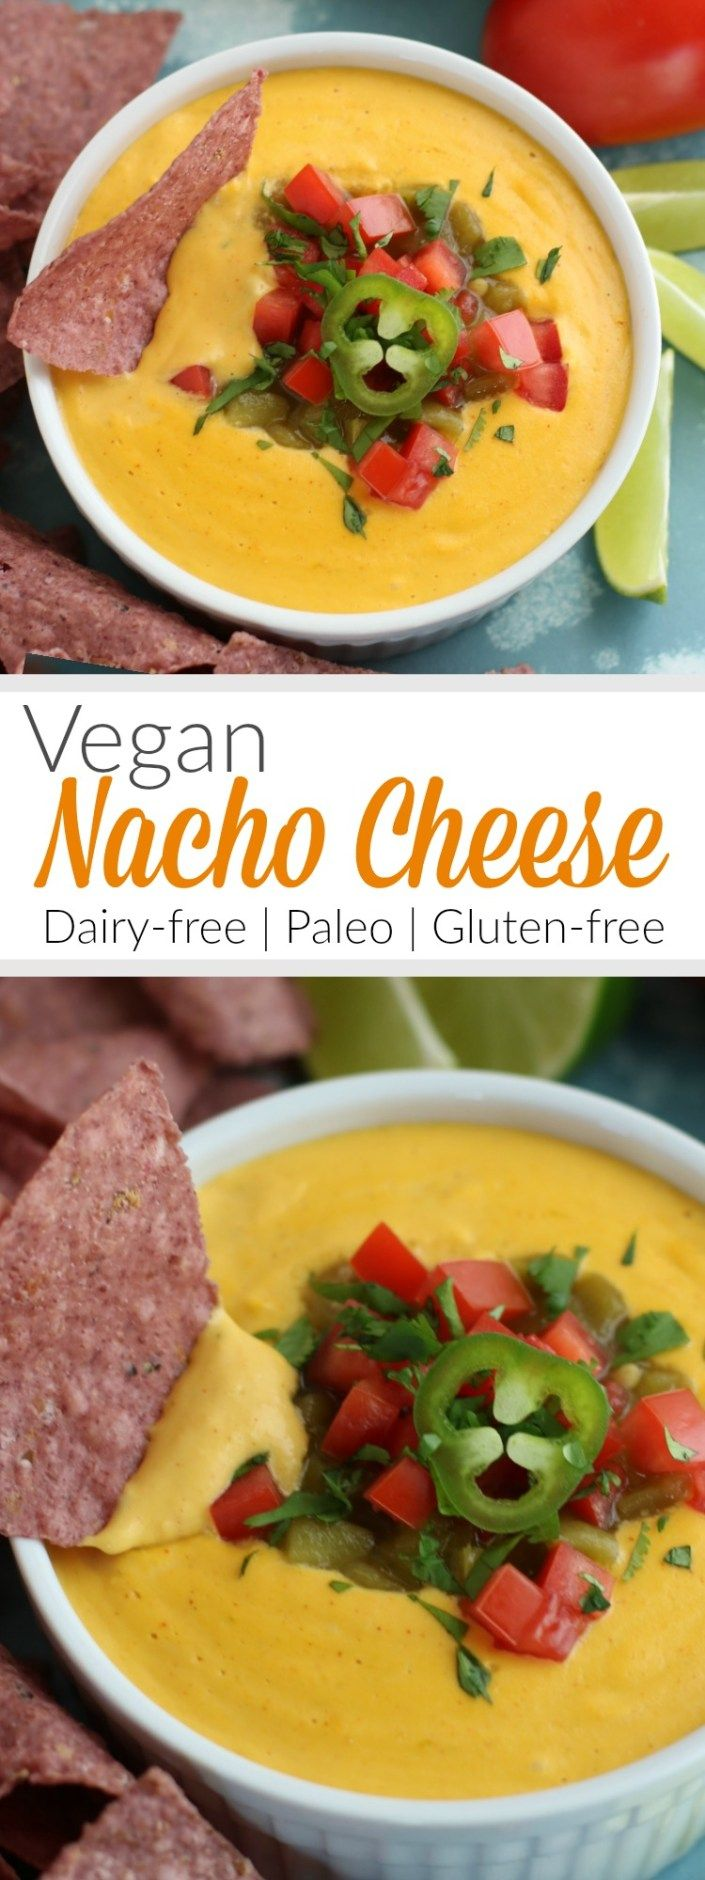 Vegan Nacho Cheese | The Real Food Dietitians | http://therealfoodrds.com/vegan-nacho-cheese/